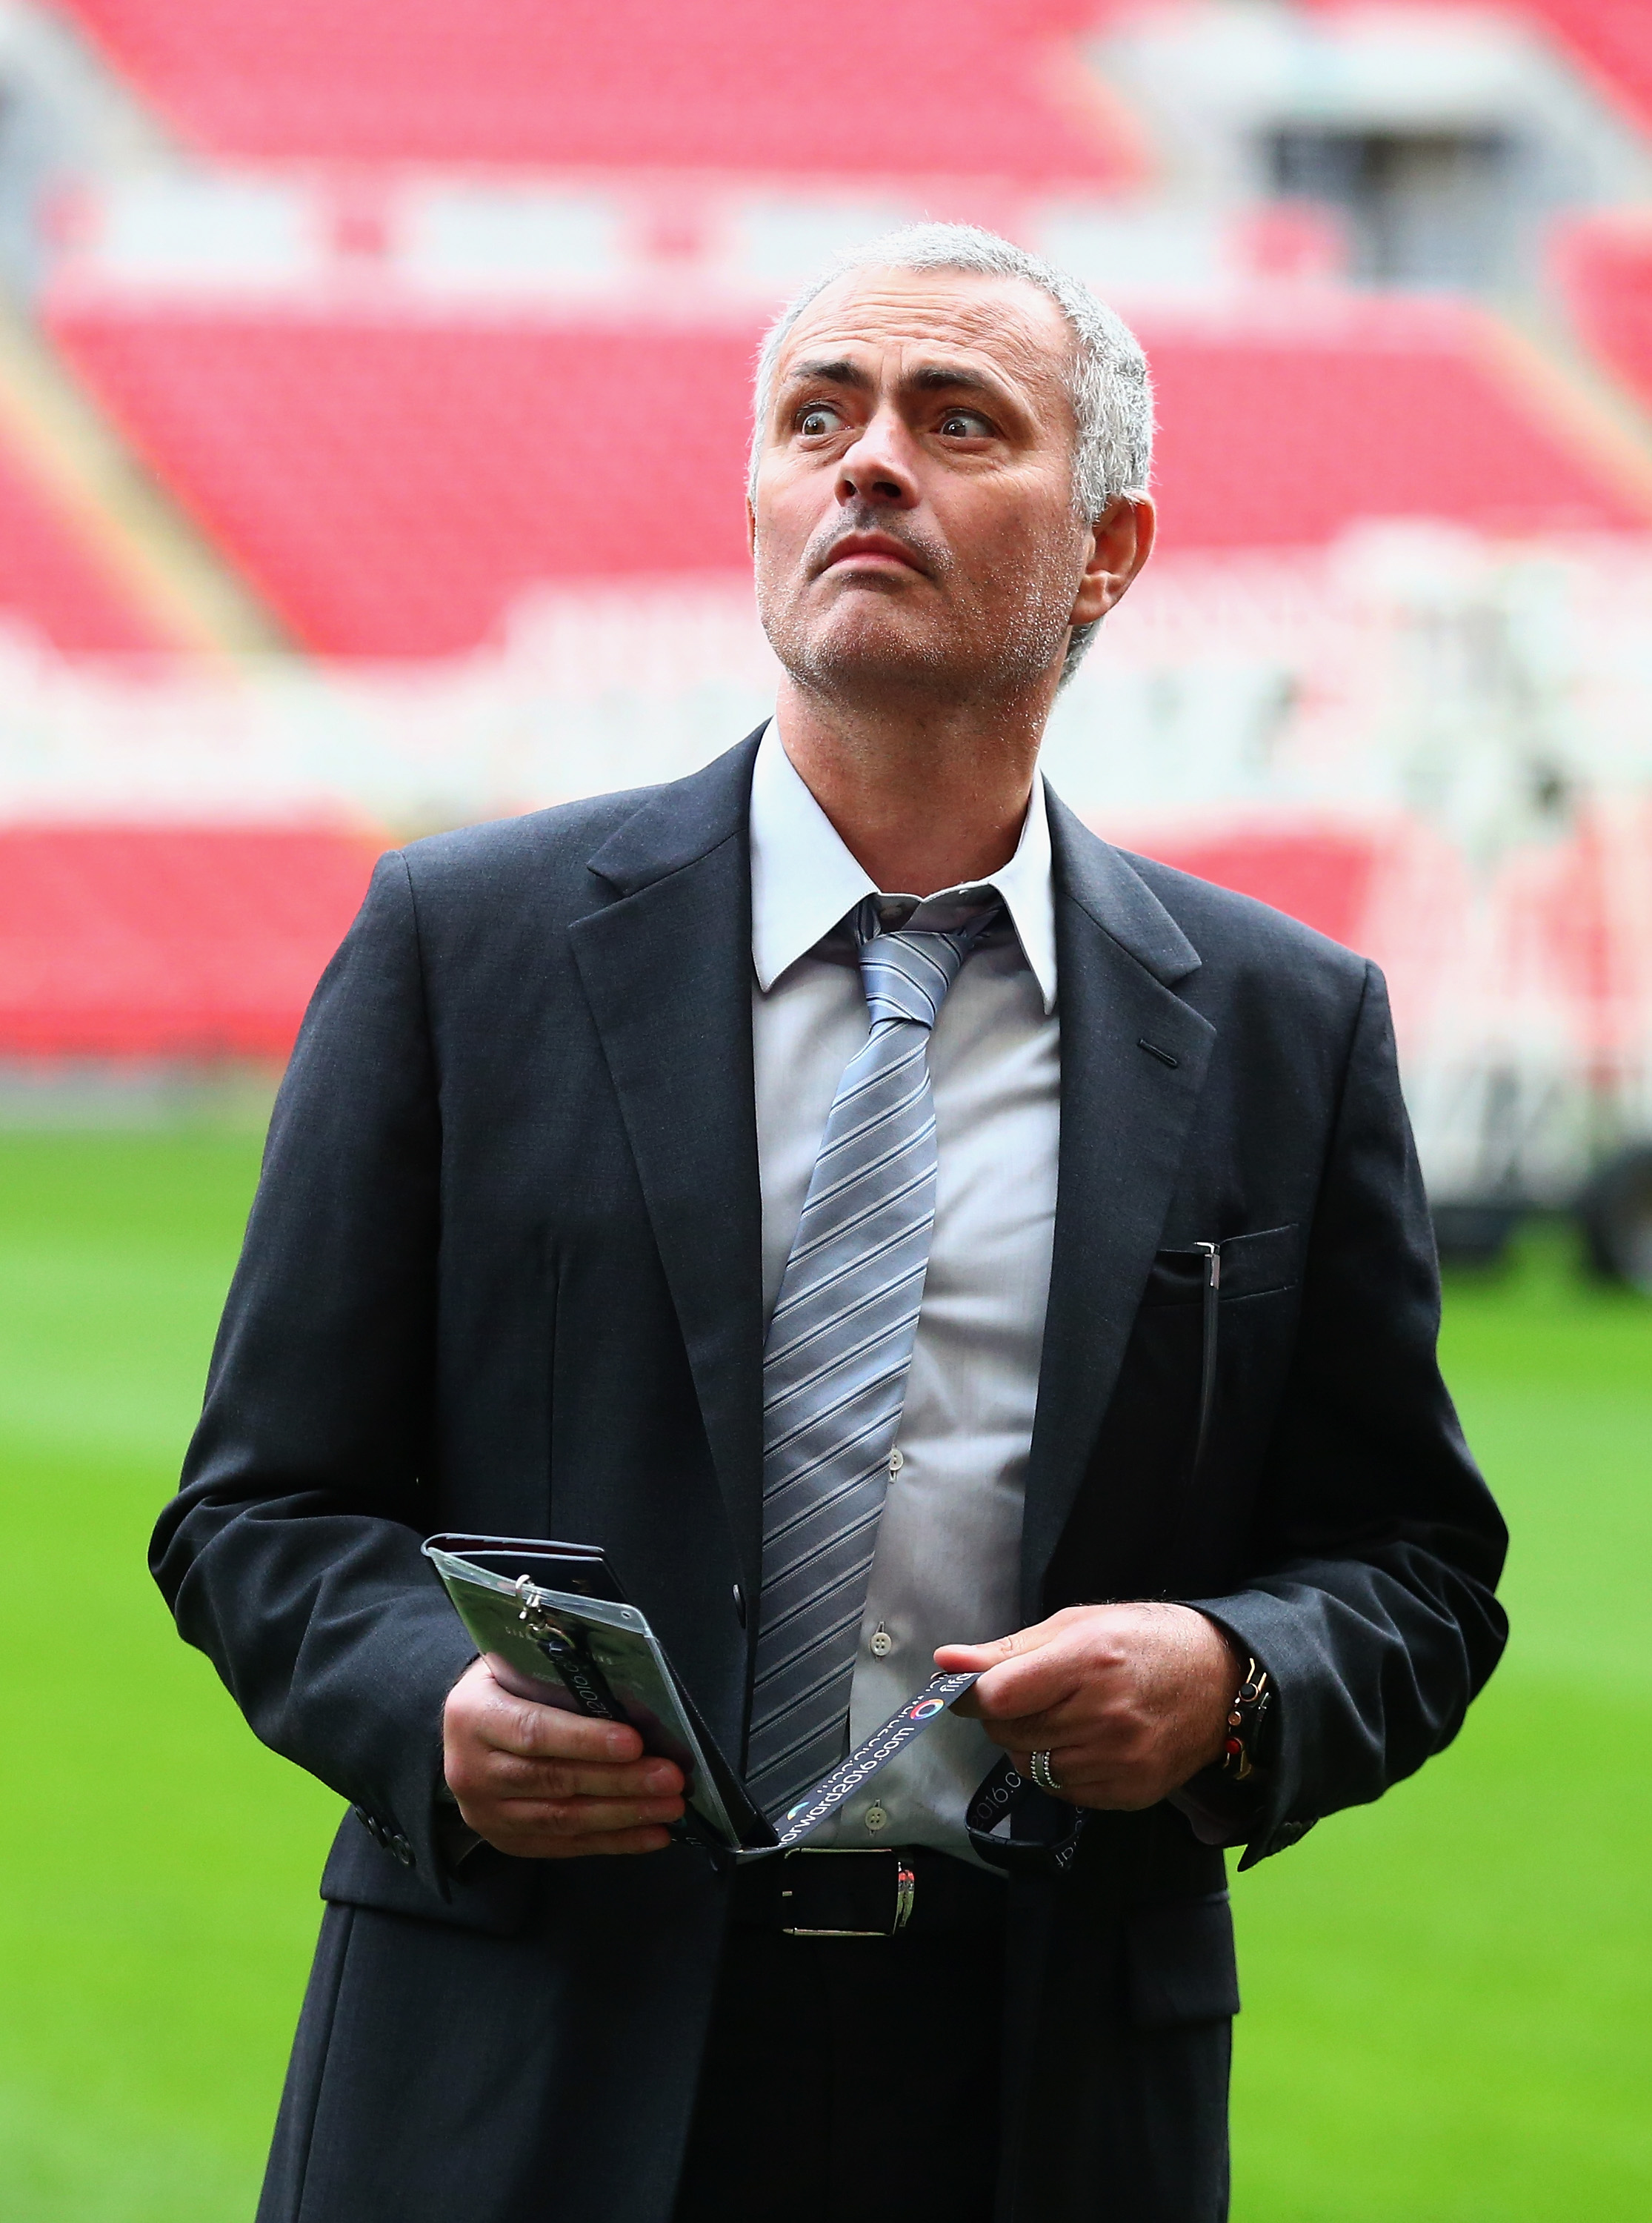 Jose Mourinho's first interview since sacking hints at Chelsea problems, Manchester United future